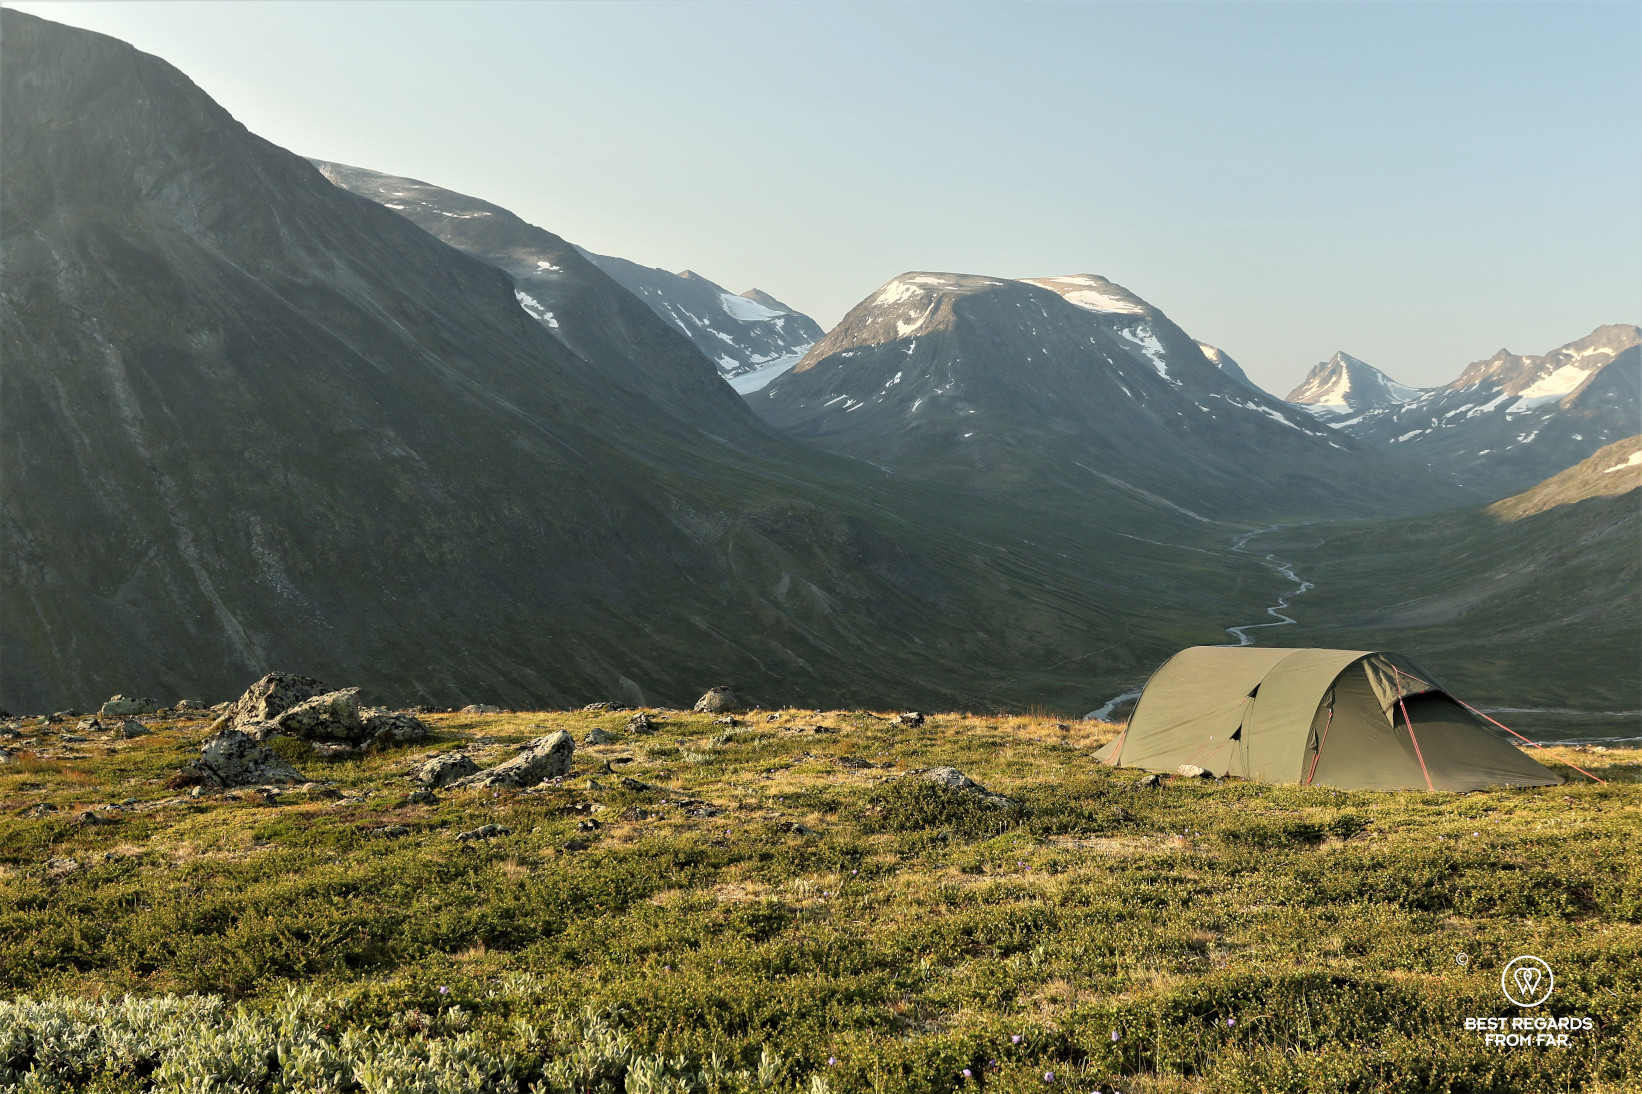 A green tent in the Arctic landscape of Norway